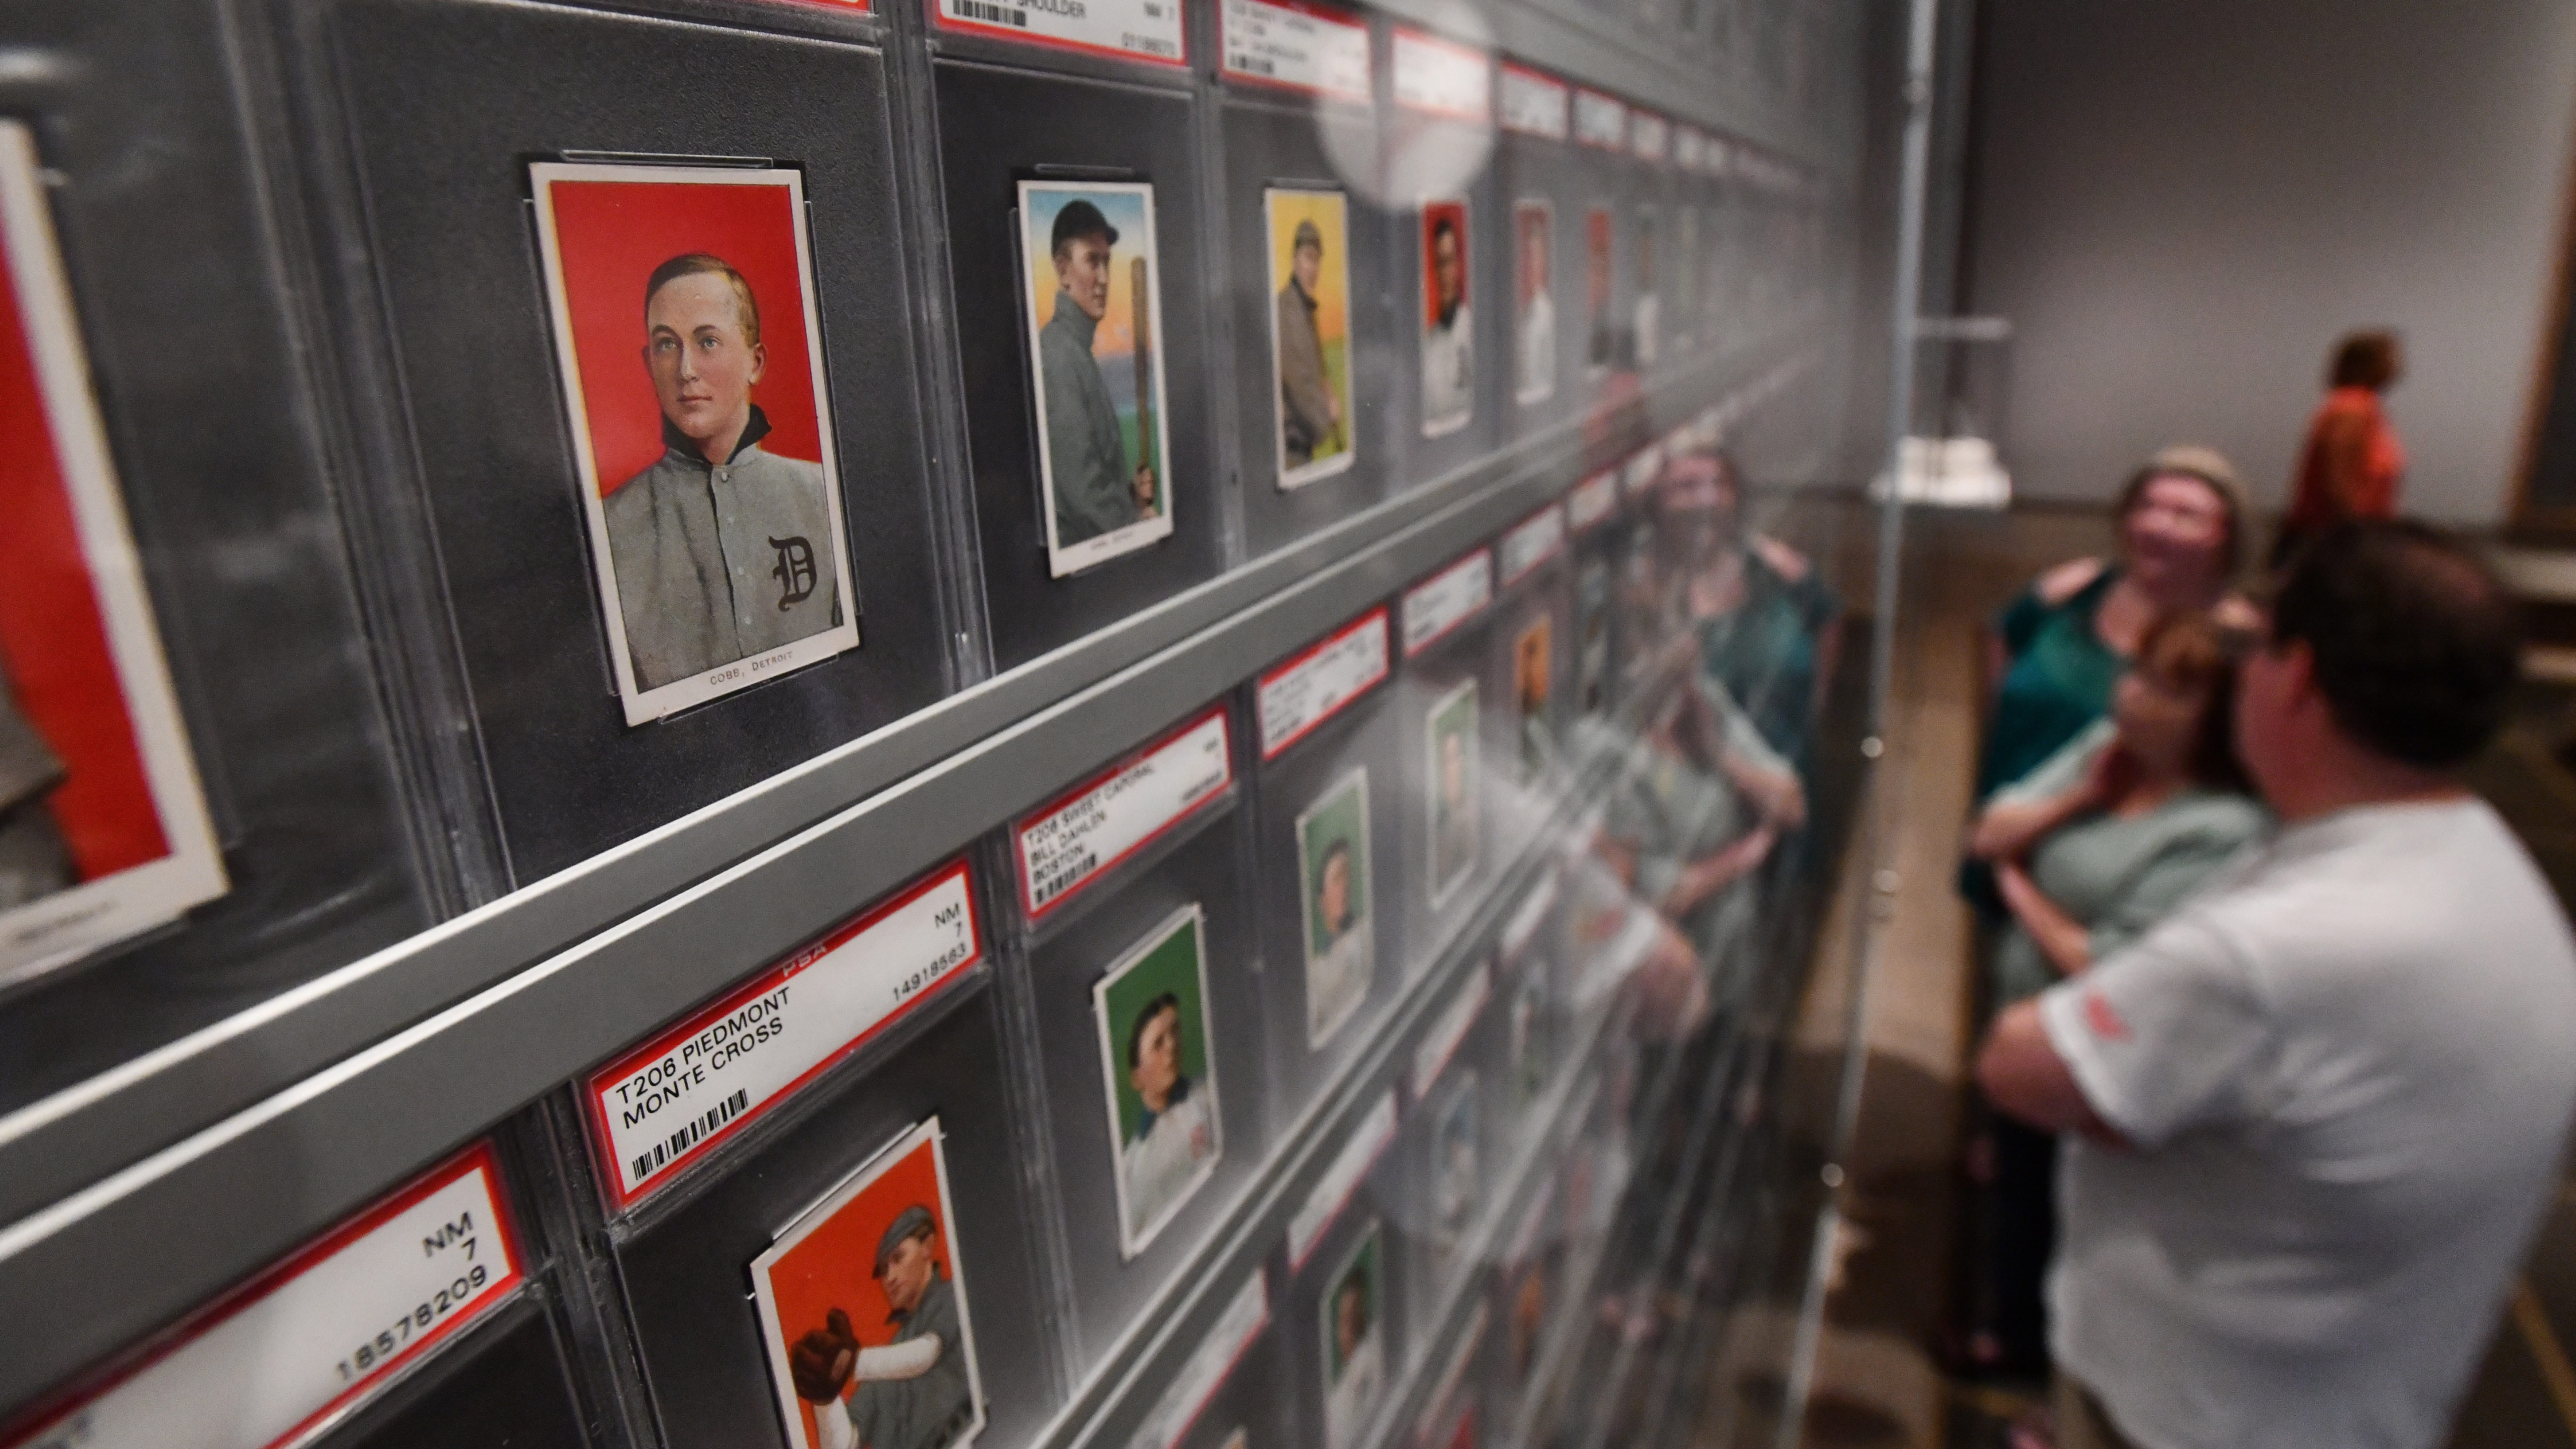 Baseball collection makes a hit with DIA exhibit